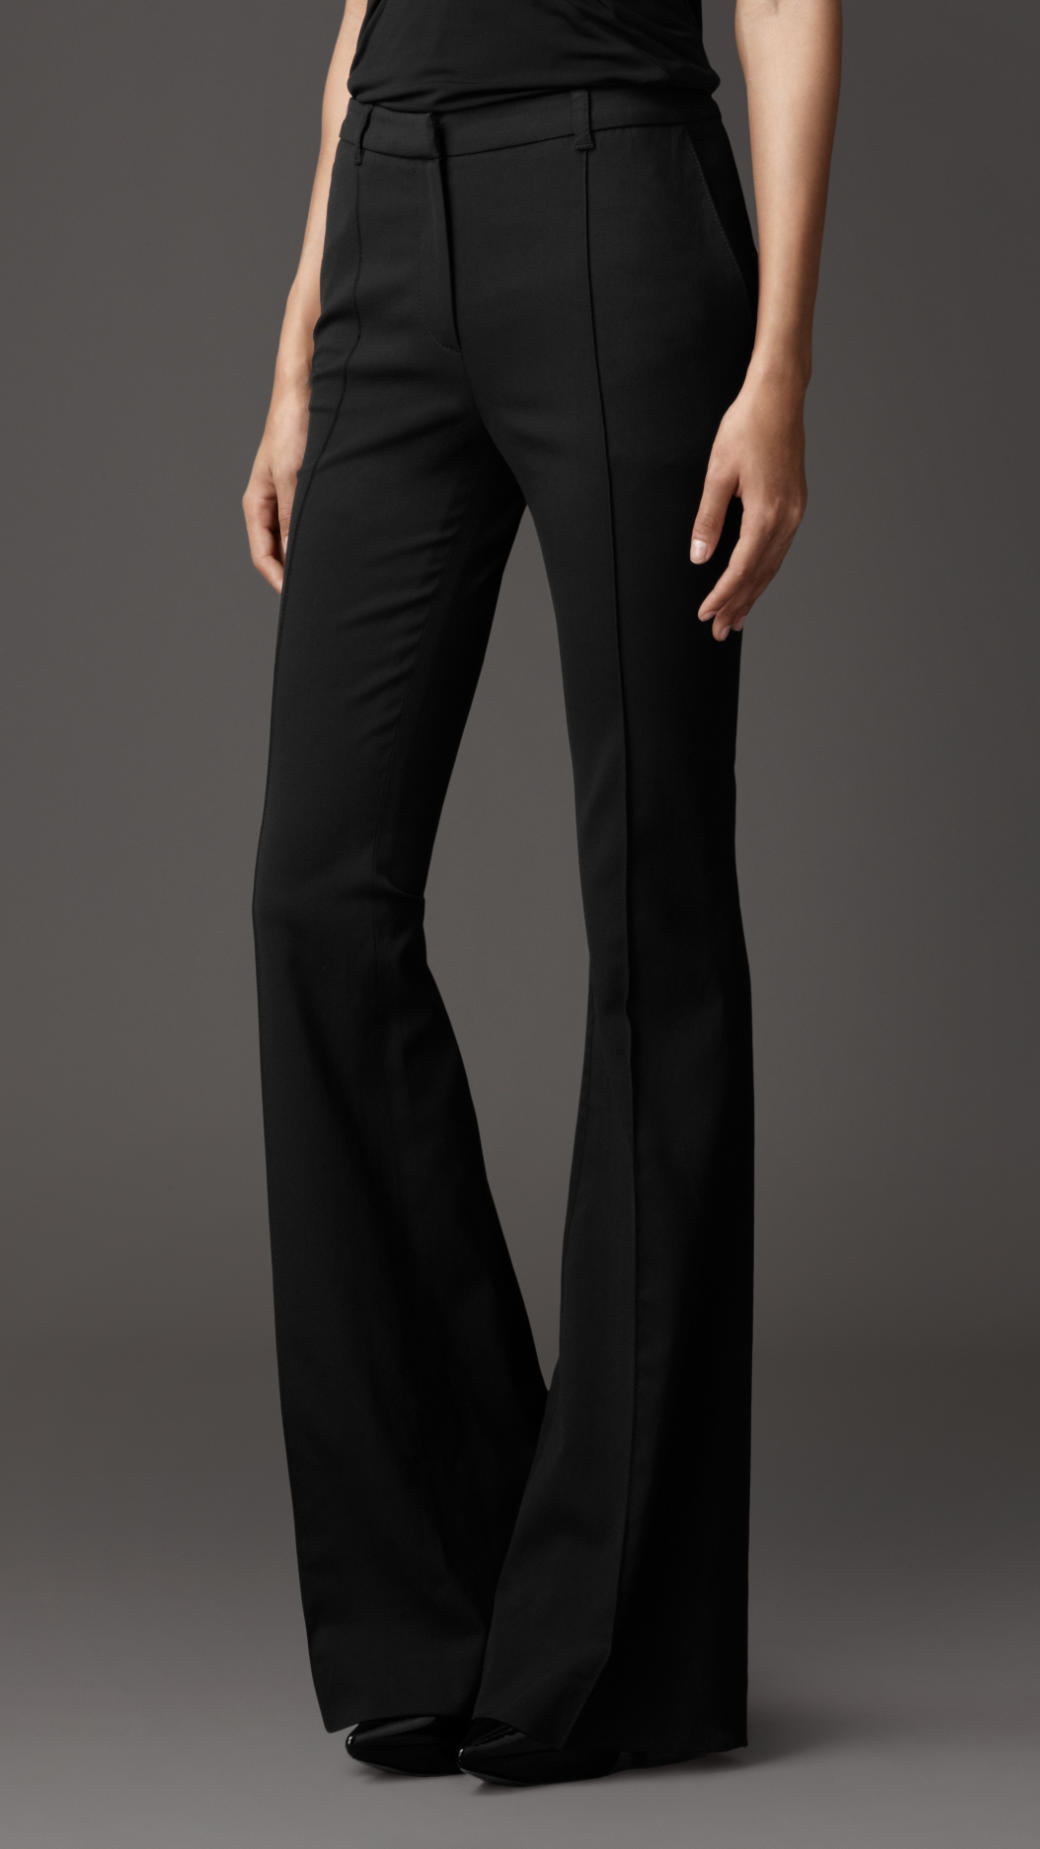 Bootcut Trousers, read reviews and buy online at George. Shop from our latest range in Women. A must-have for every woman's wardrobe, these bootcut trousers /5().